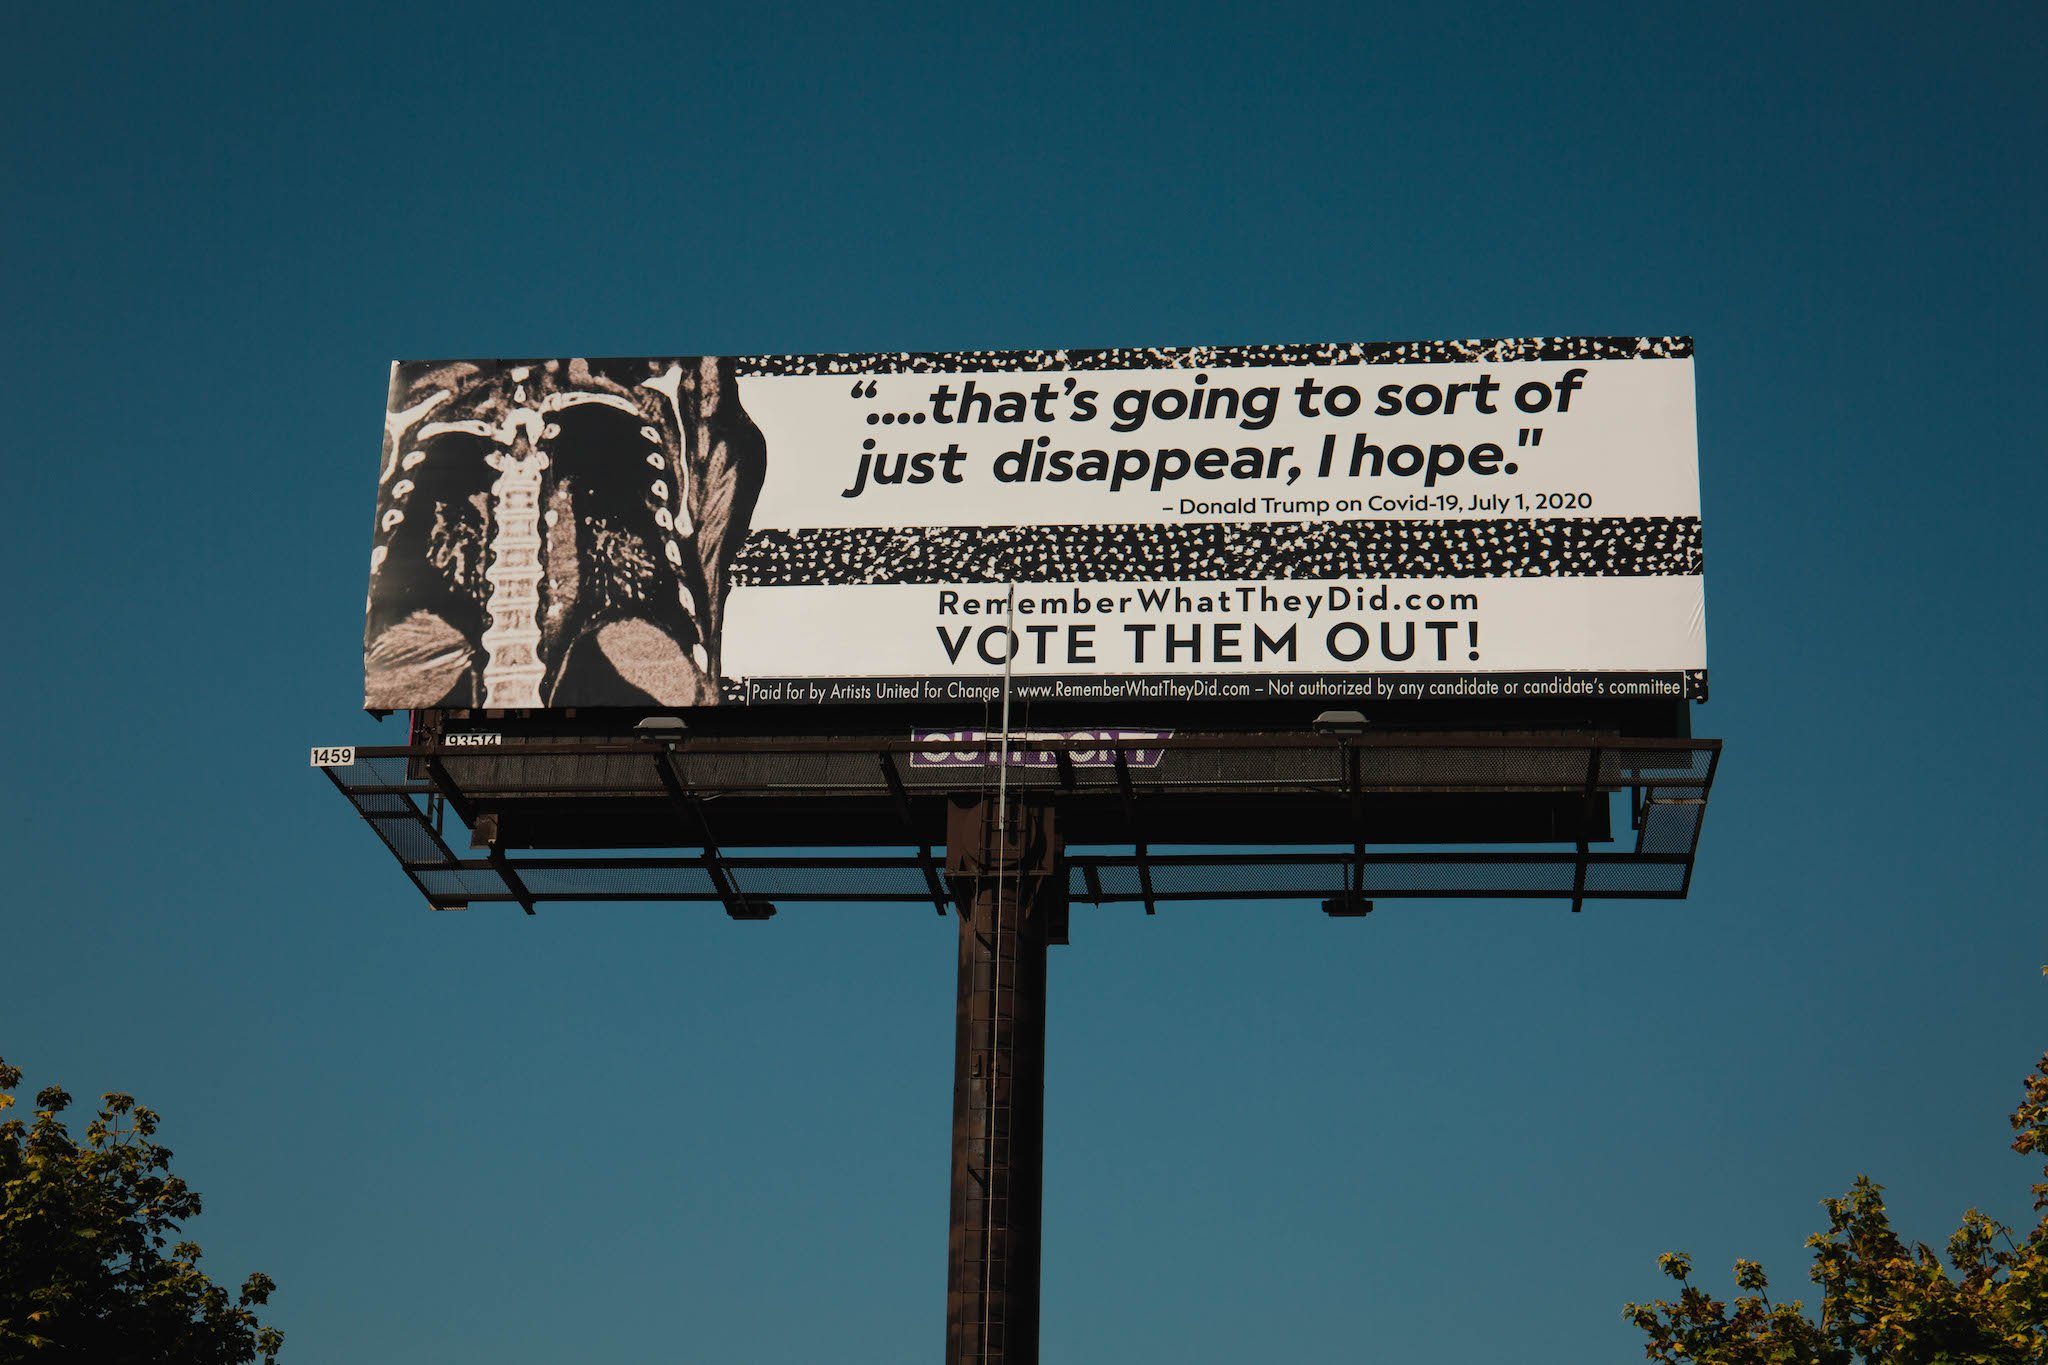 Robin Bell's New Project: Anti-Trump Billboards, All Over the US